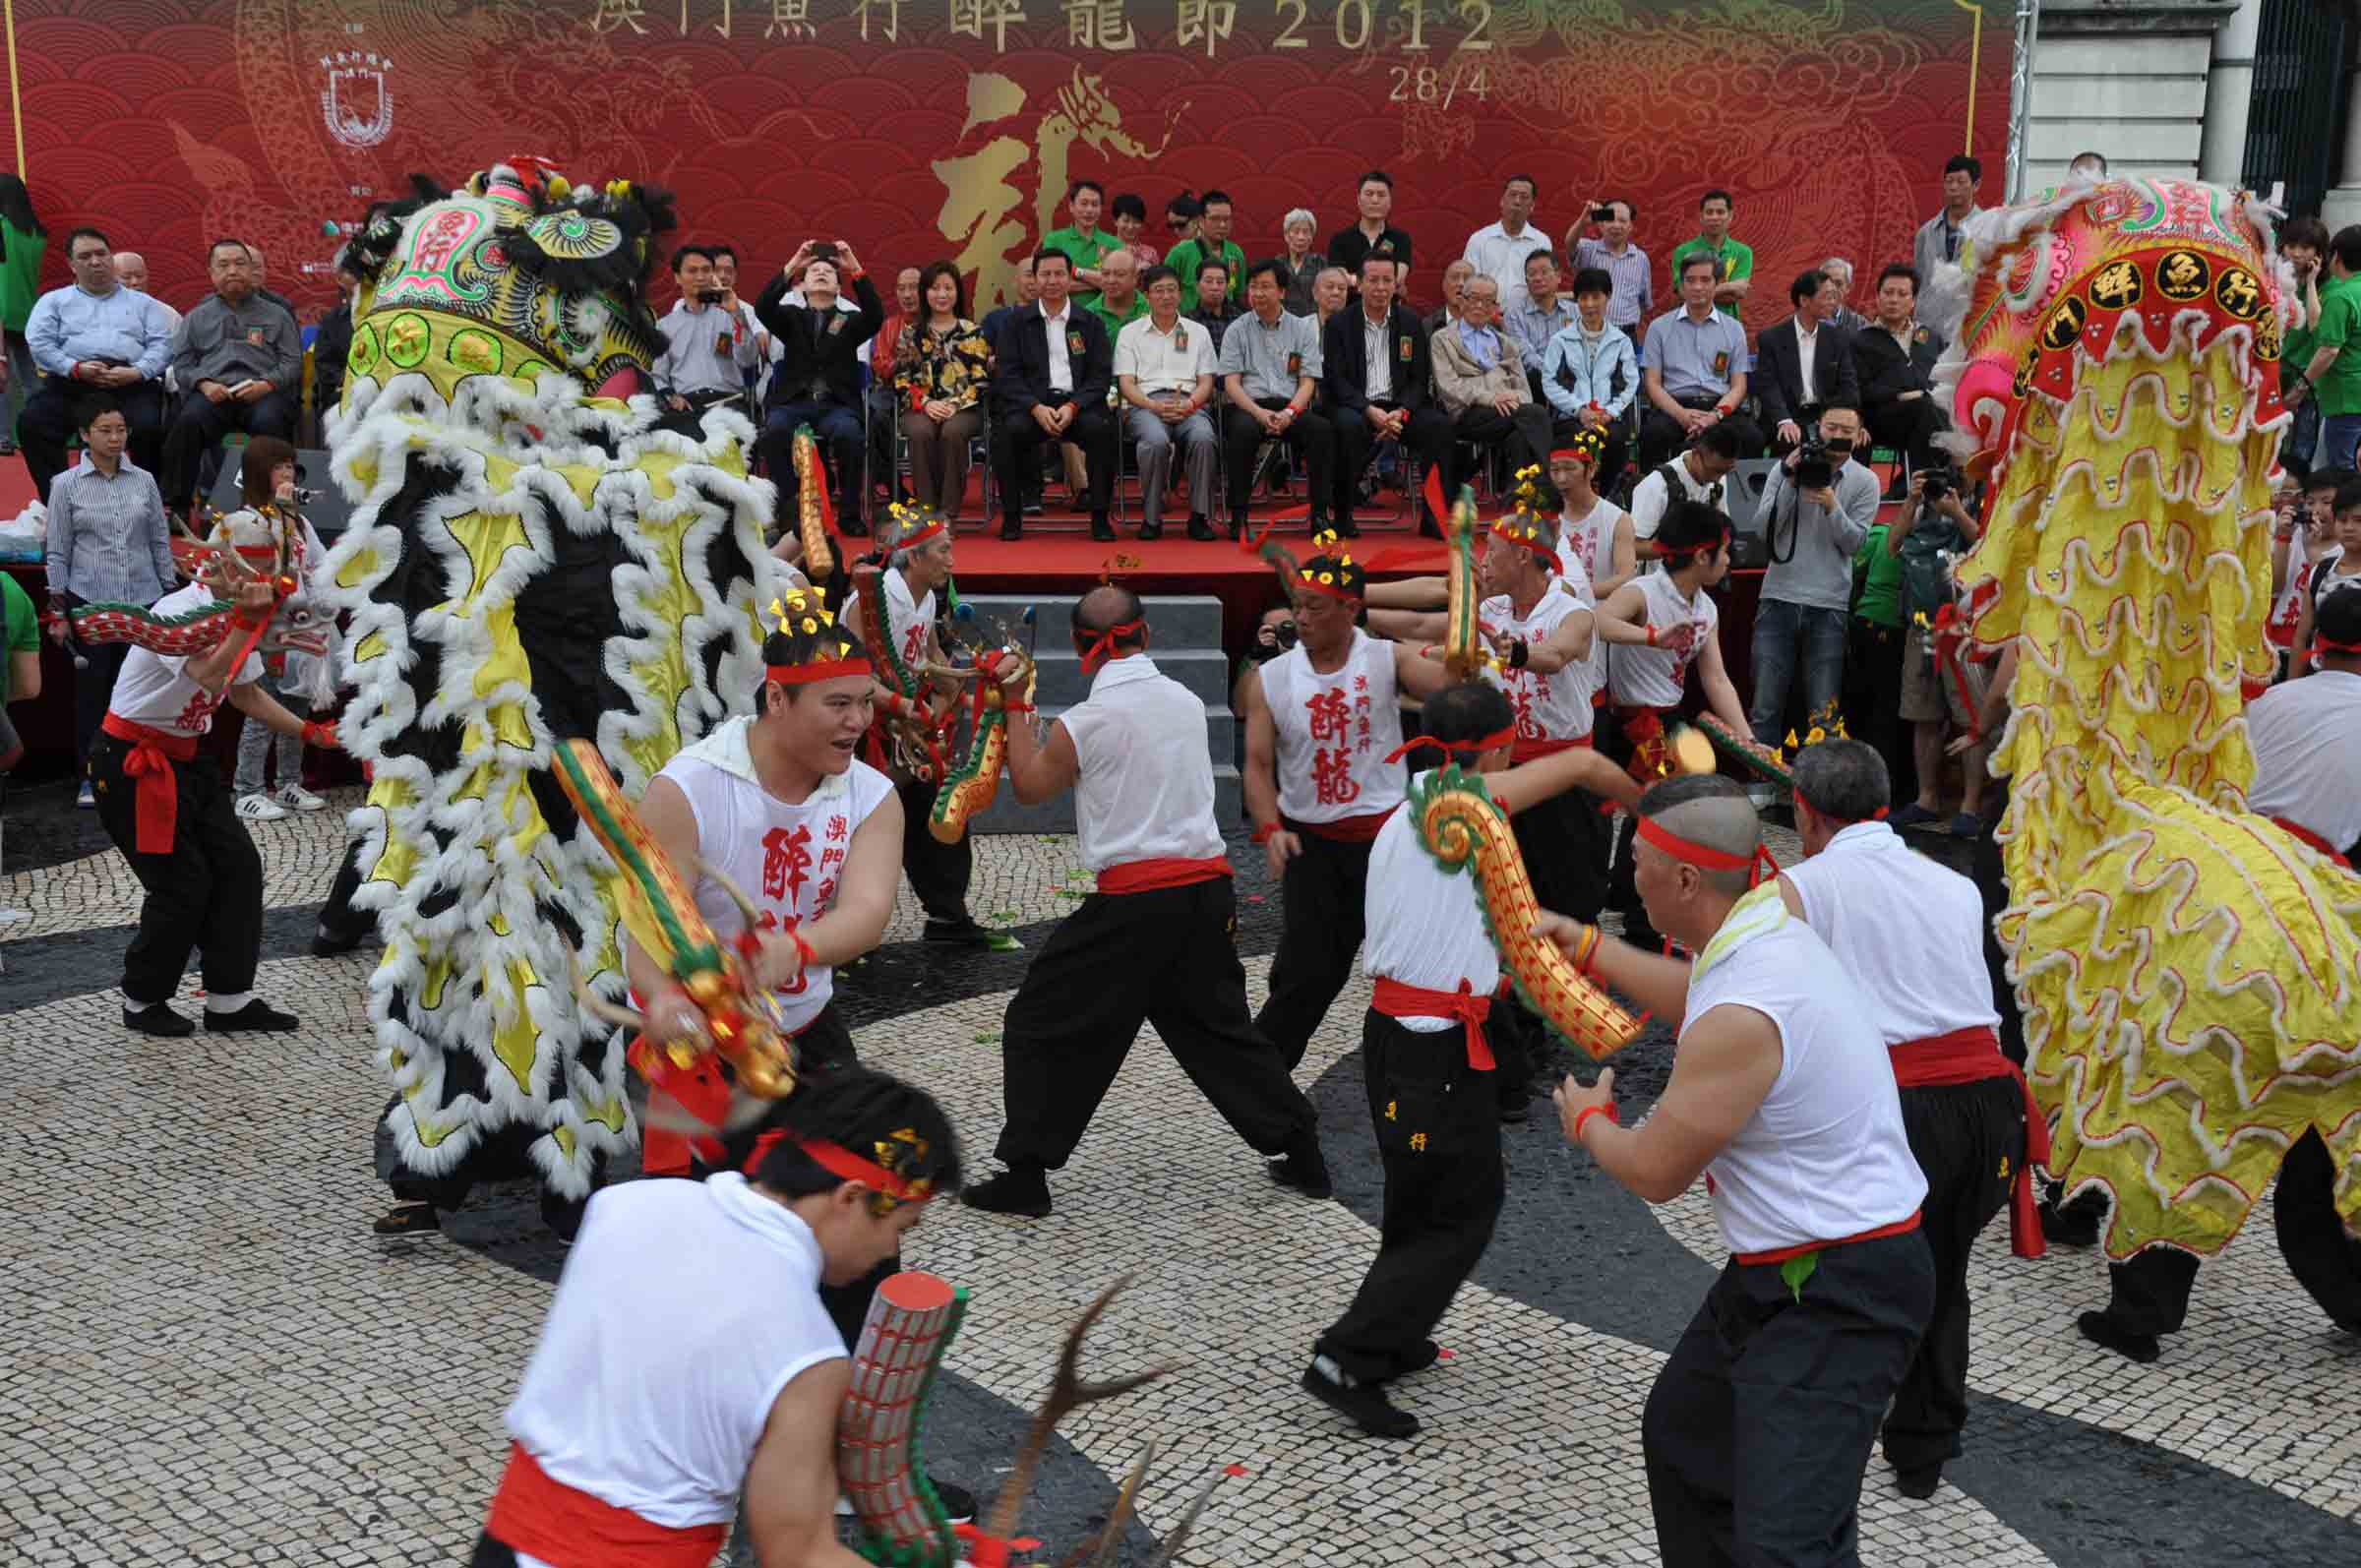 Feast of the Drunken Dragon Festival Dargon Dance